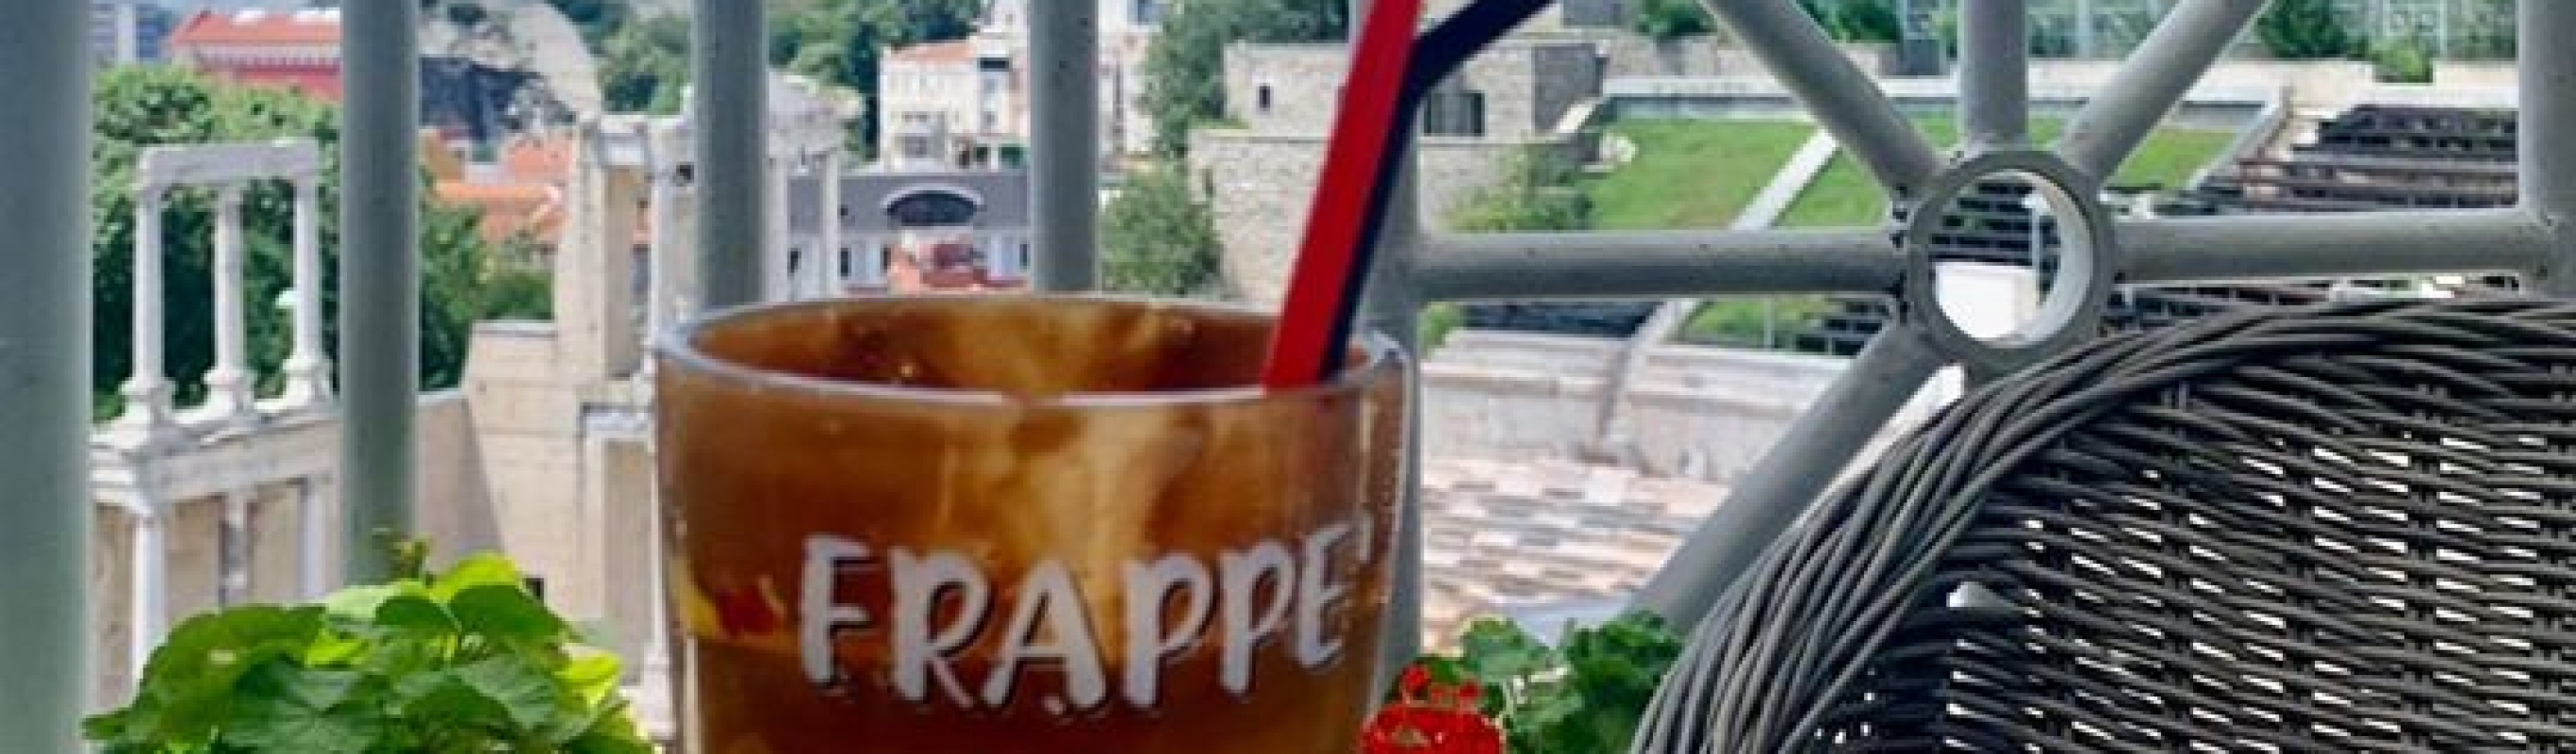 Where to drink coffee after a walk in Old Plovdiv?